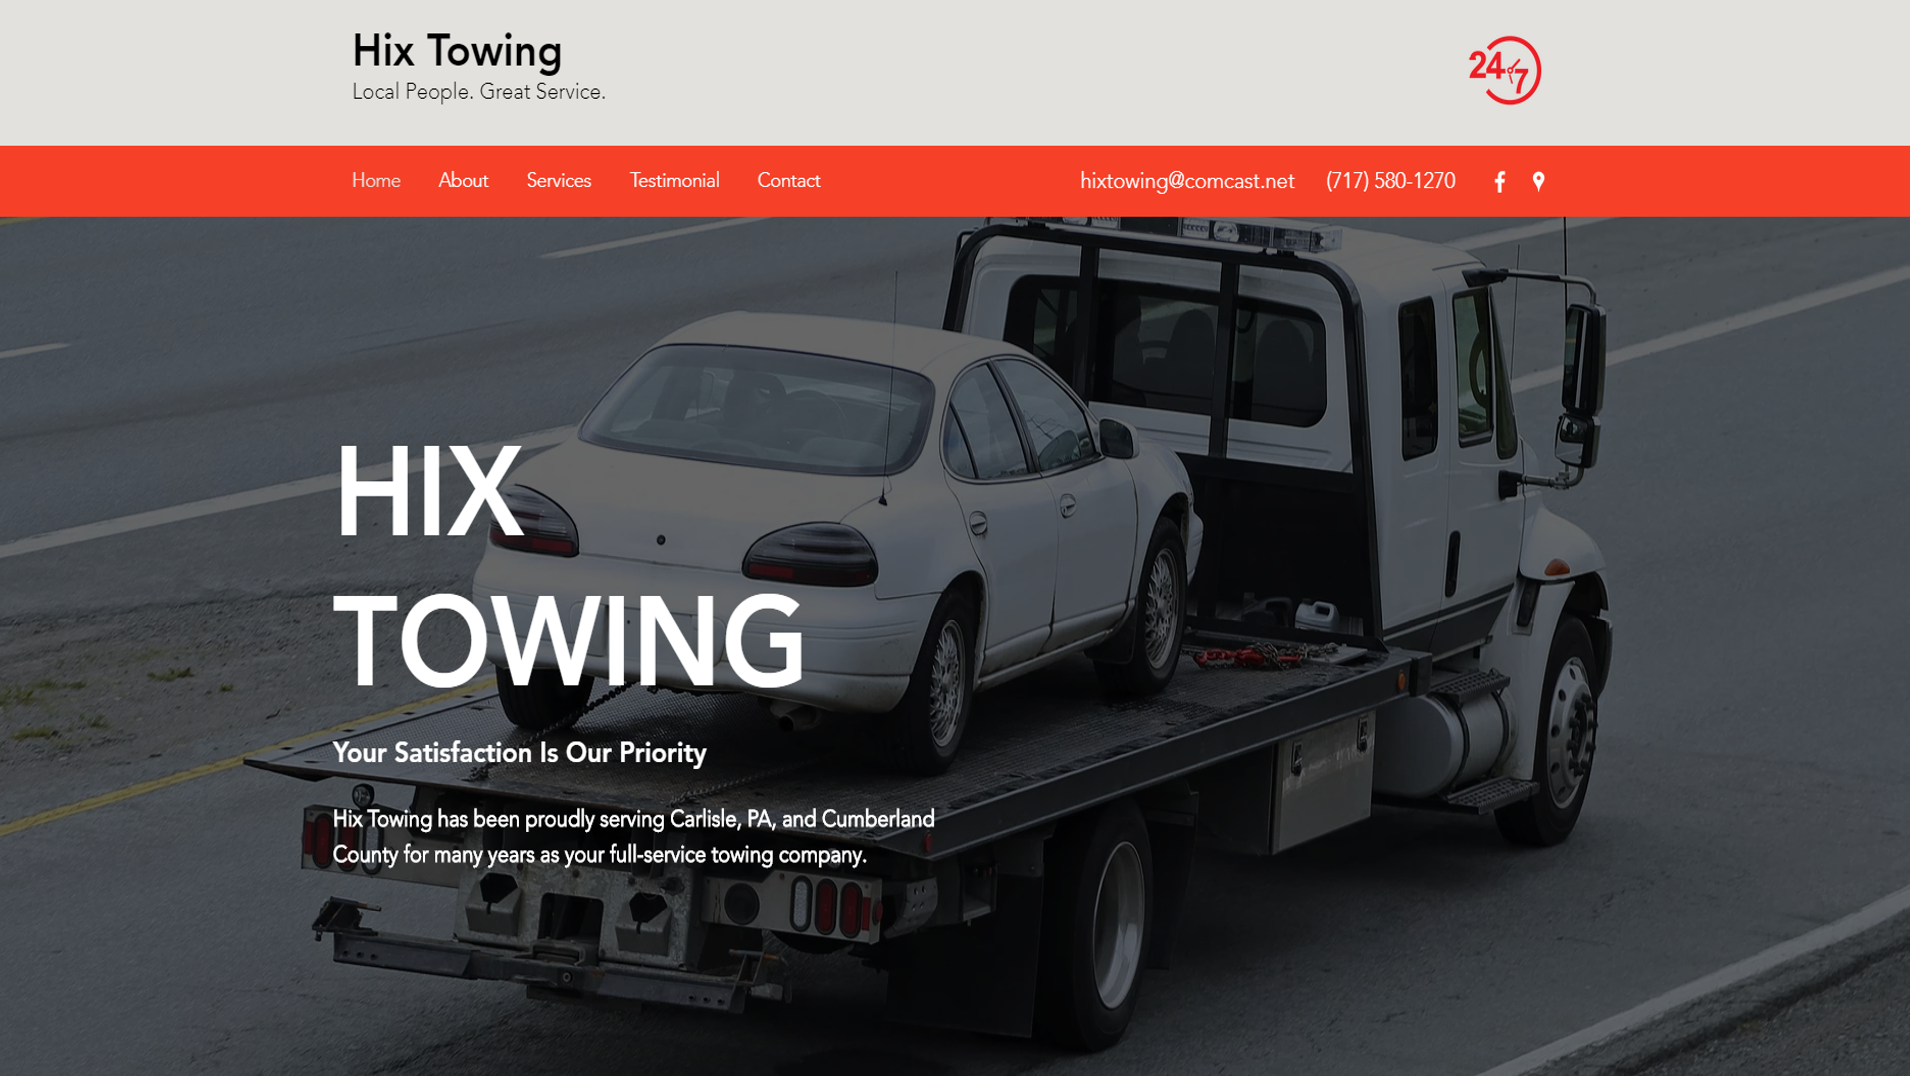 Hix Towing